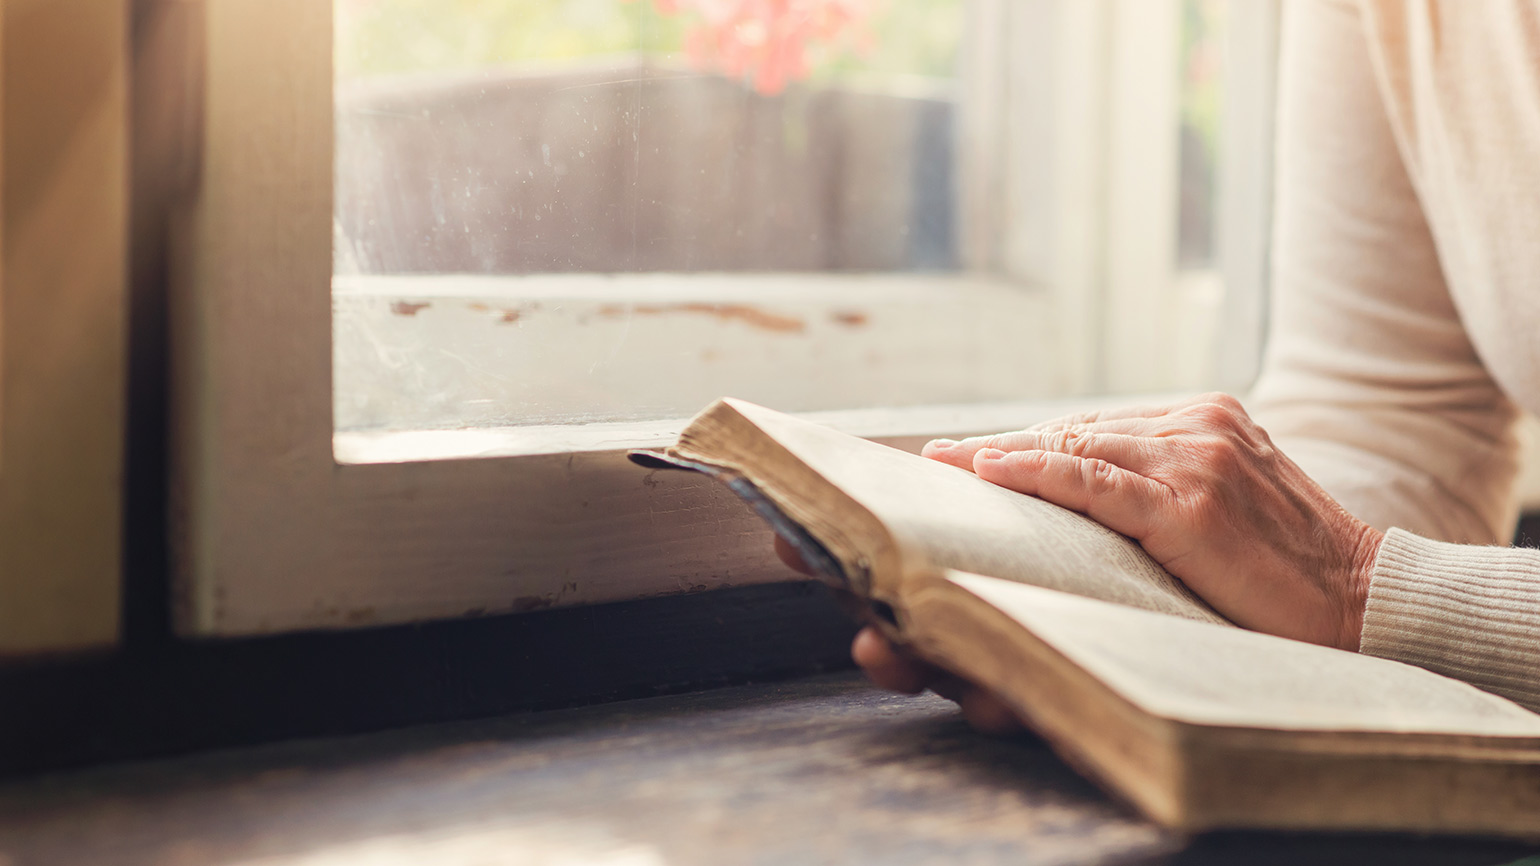 A woman reads the Bible by a window